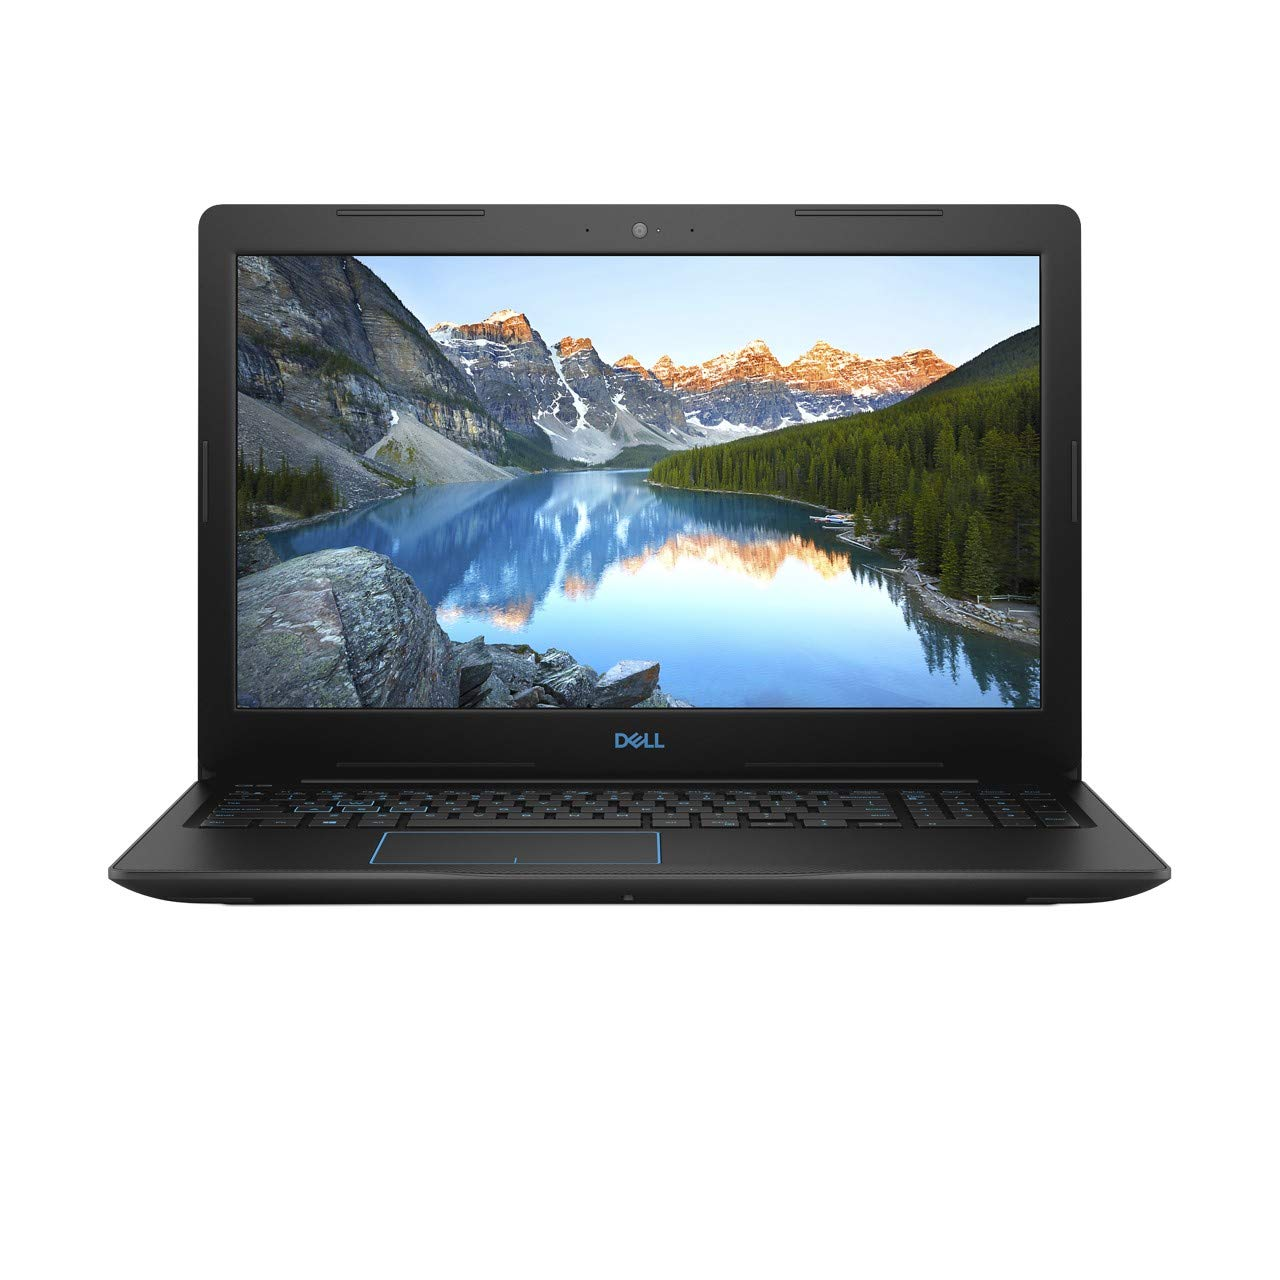 Buy Dell G3 3579 Core i5 8th Gen 15.6-inch FHD Laptop (8GB/1TB+ ...